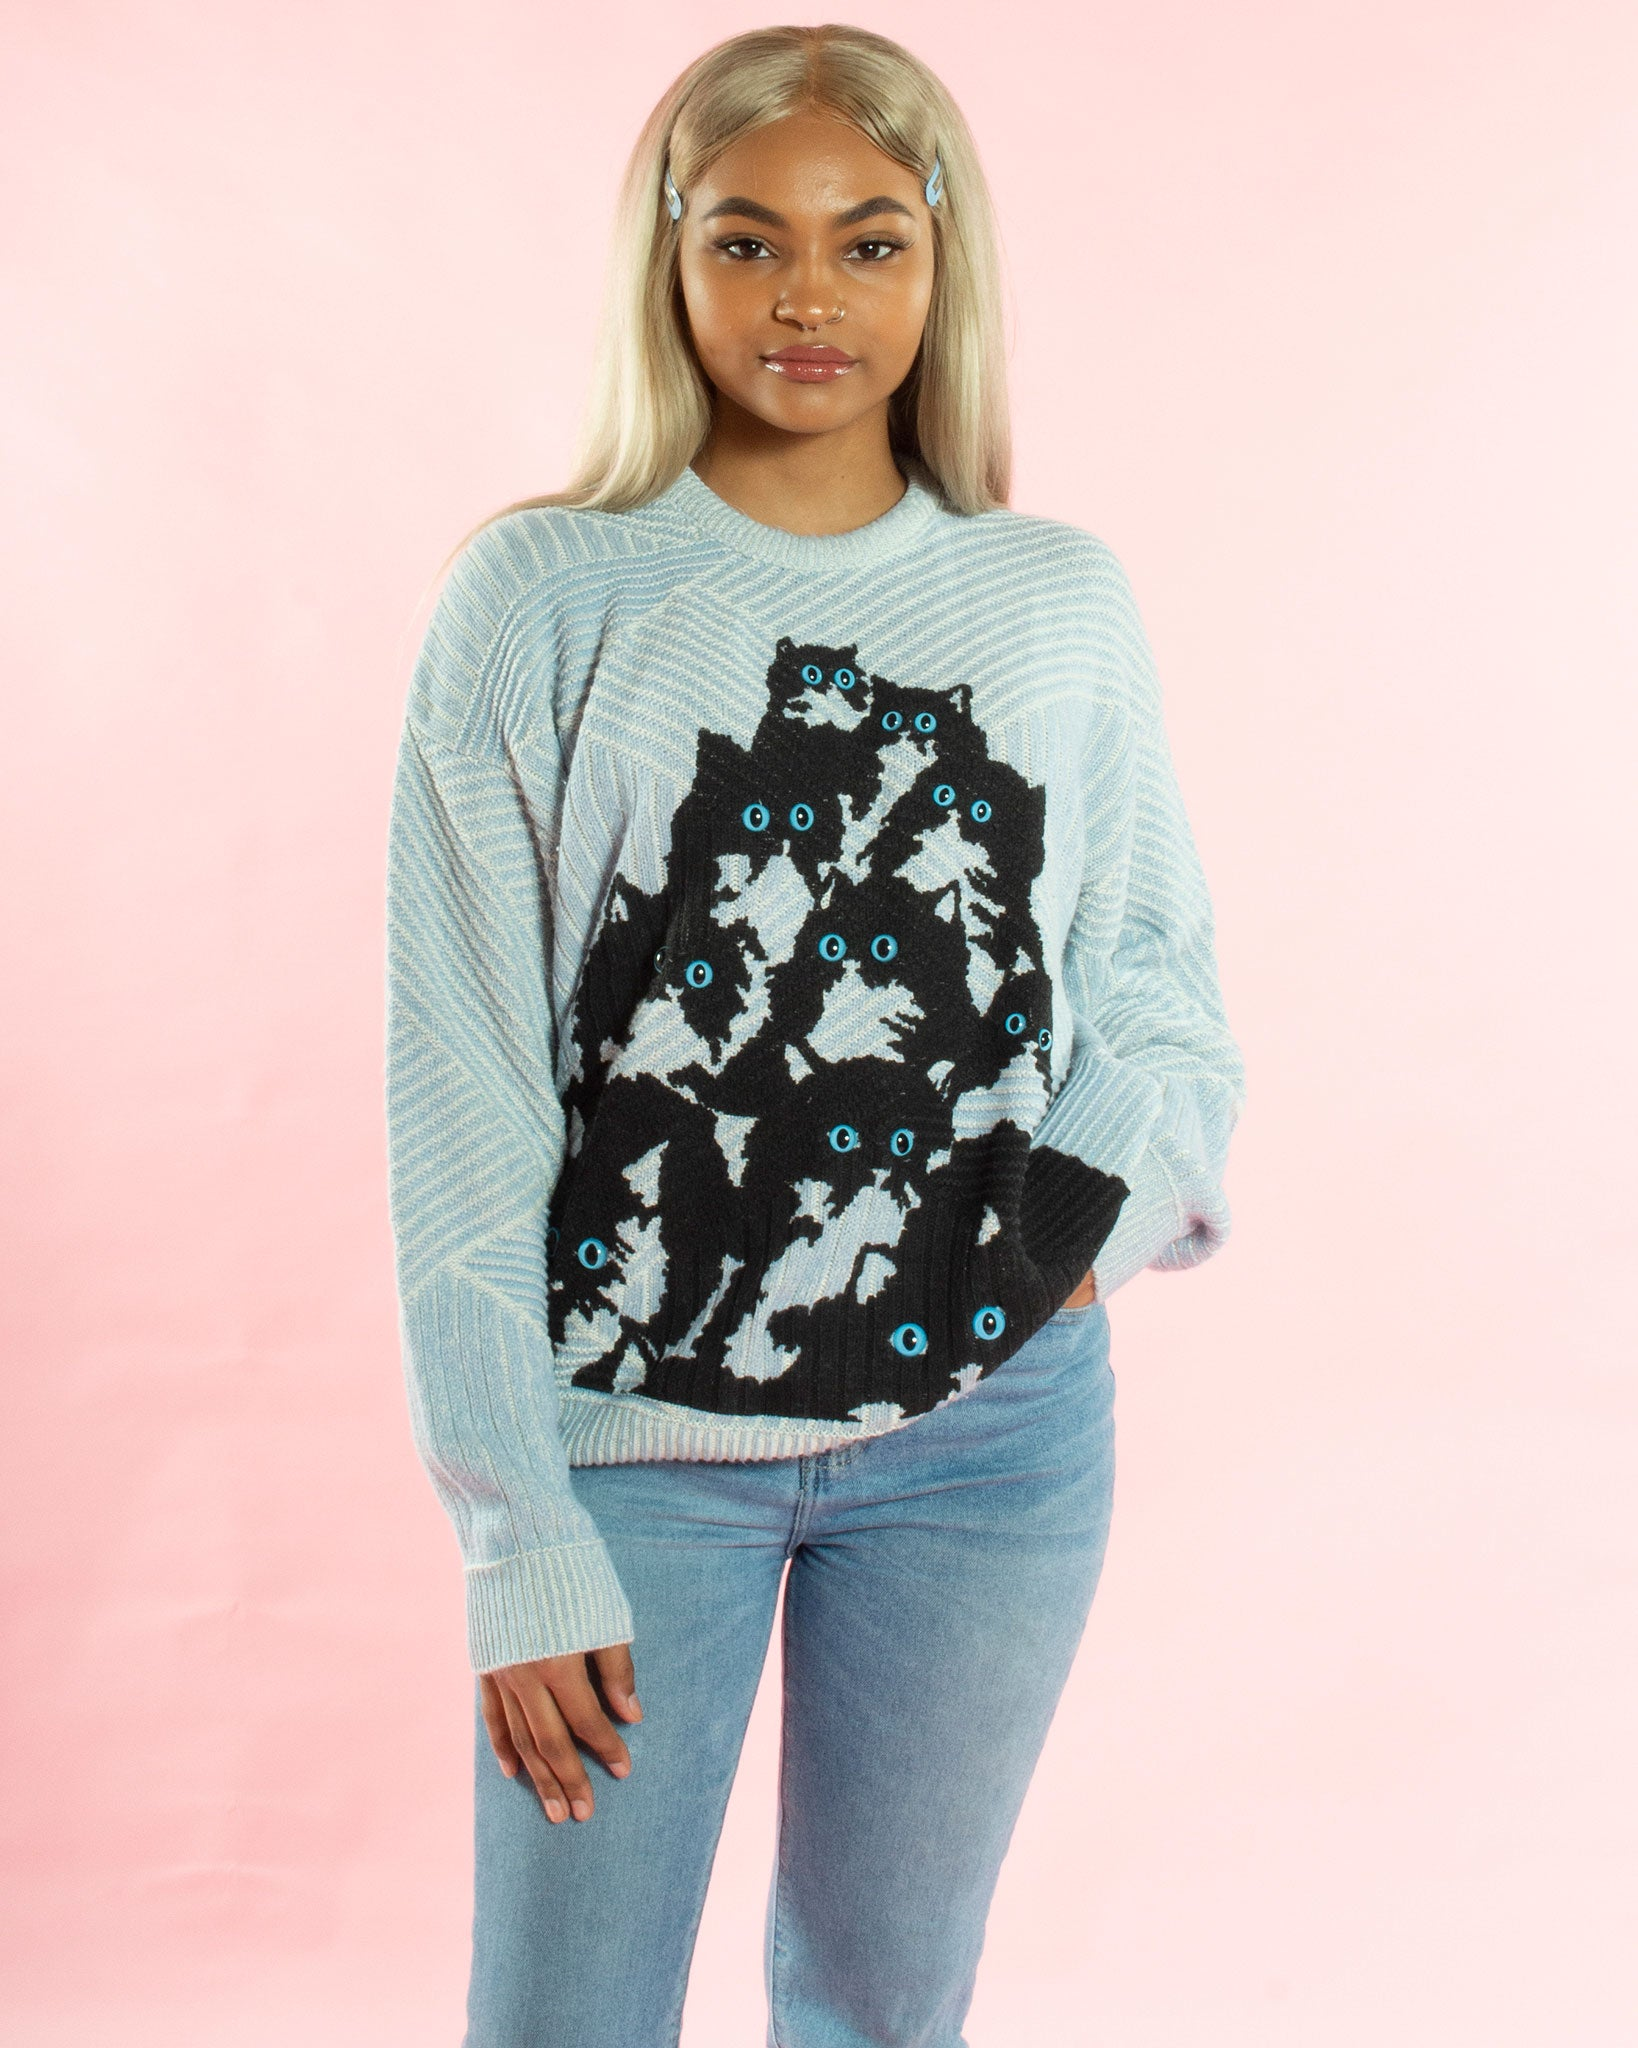 ebe28bfbd1e648 Blue and White Kitty Sweater